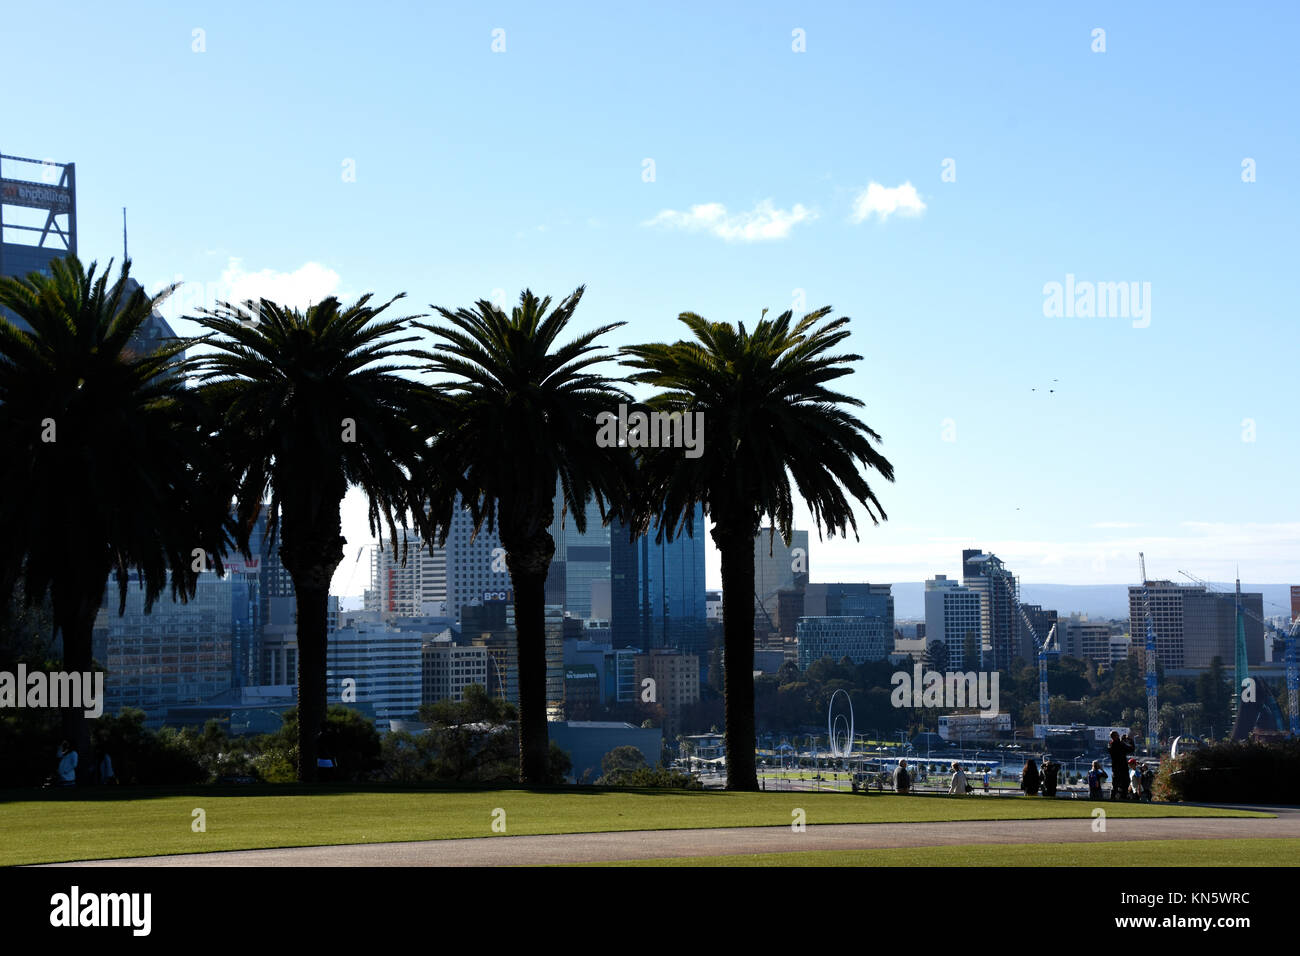 View of Perth from Kings Park with Palm Trees in front - Stock Image